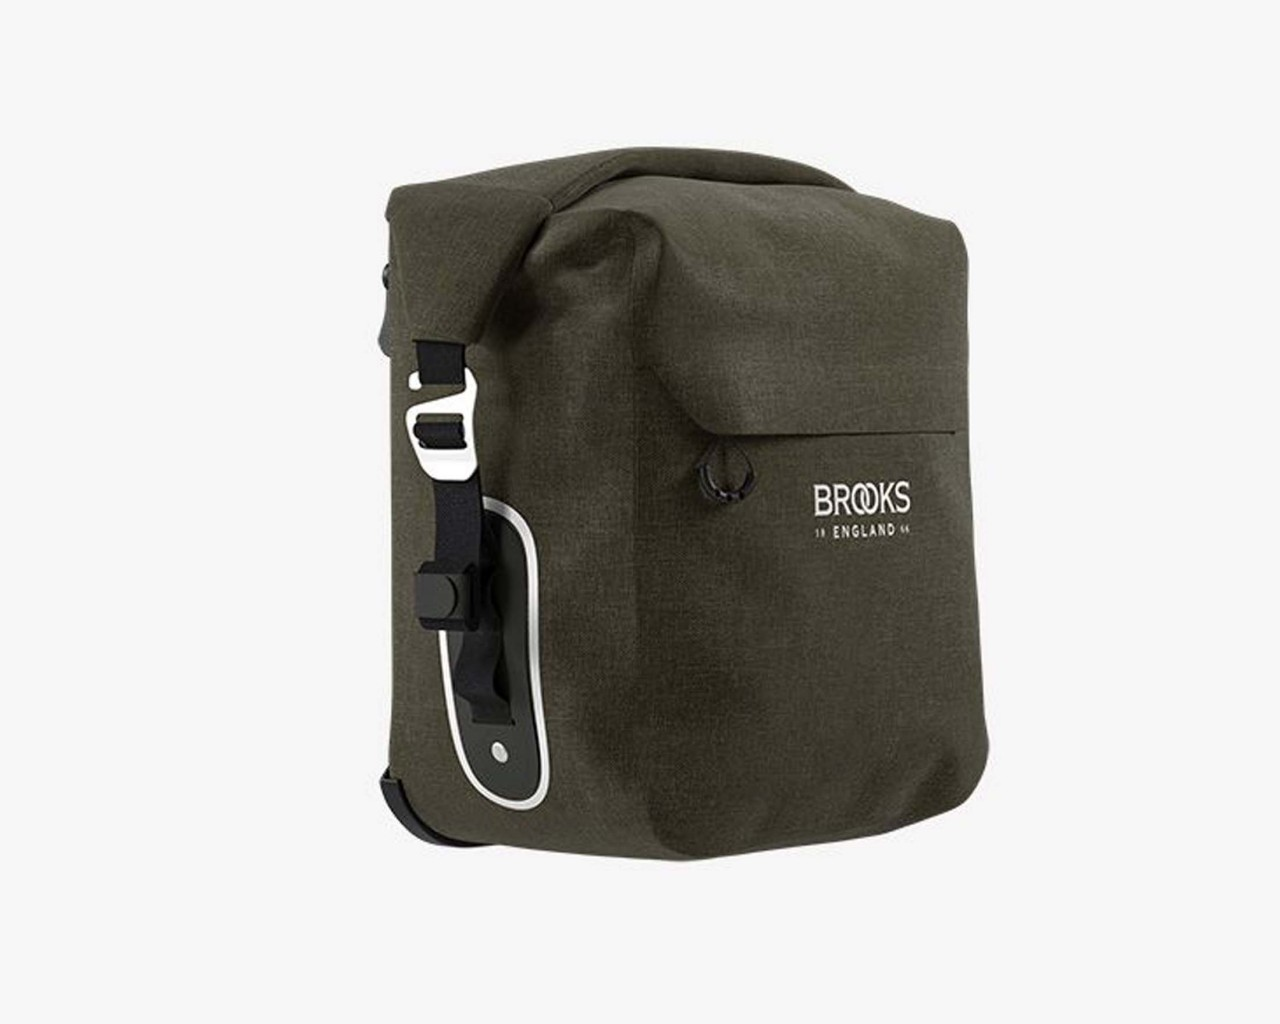 Brooks Scape Small Pannier - Carrier bag | mud green